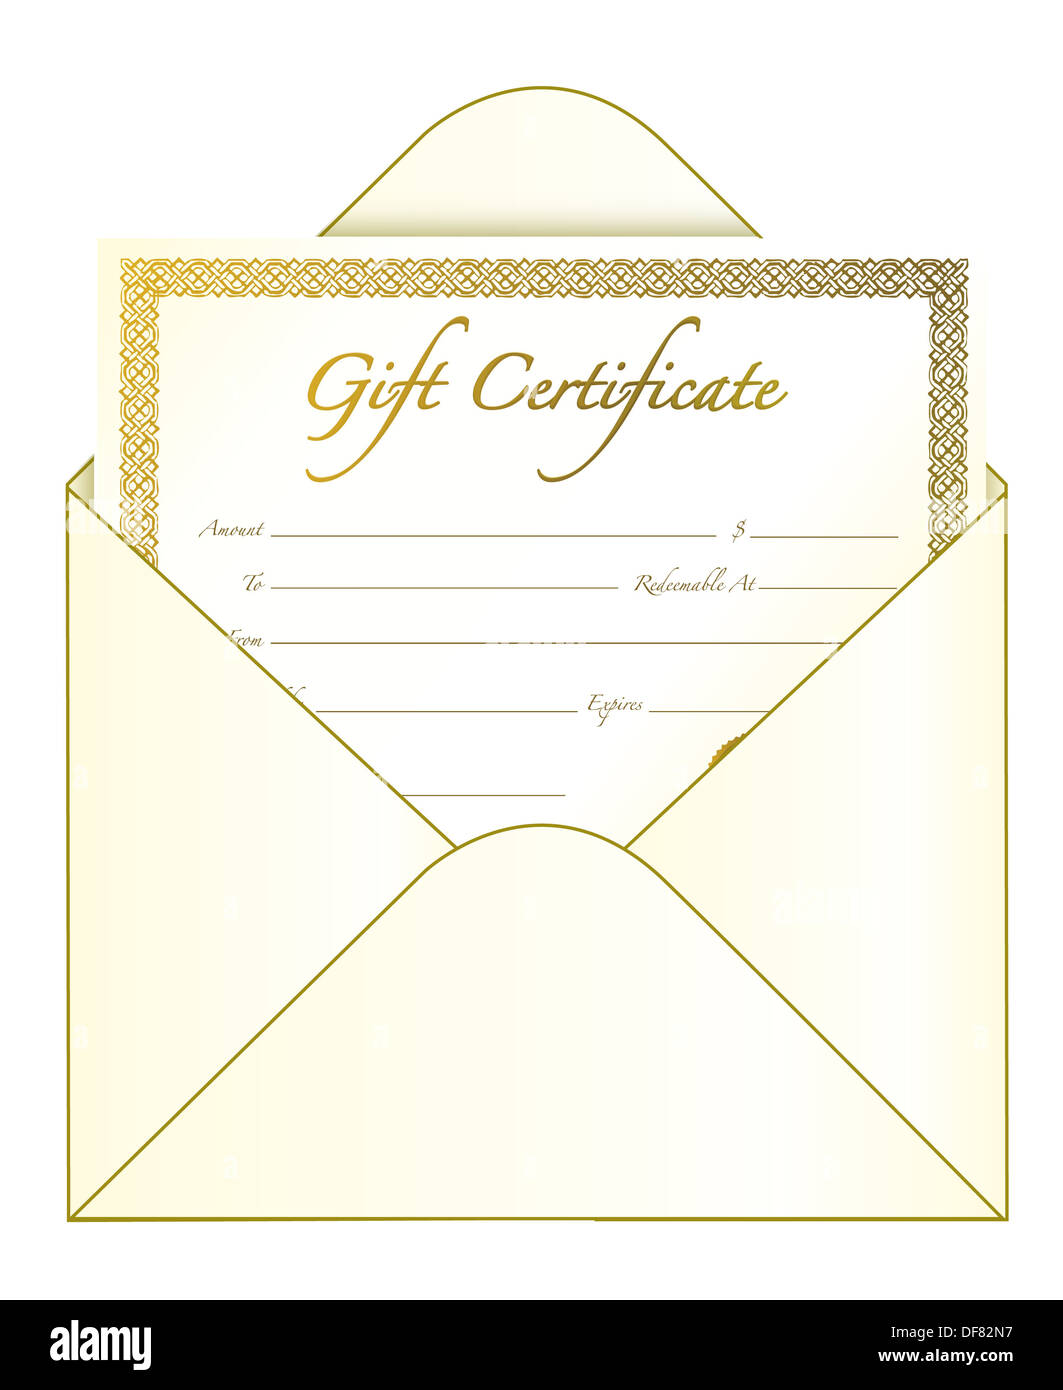 gift certificate in an envelope stock photo 61028723 alamy